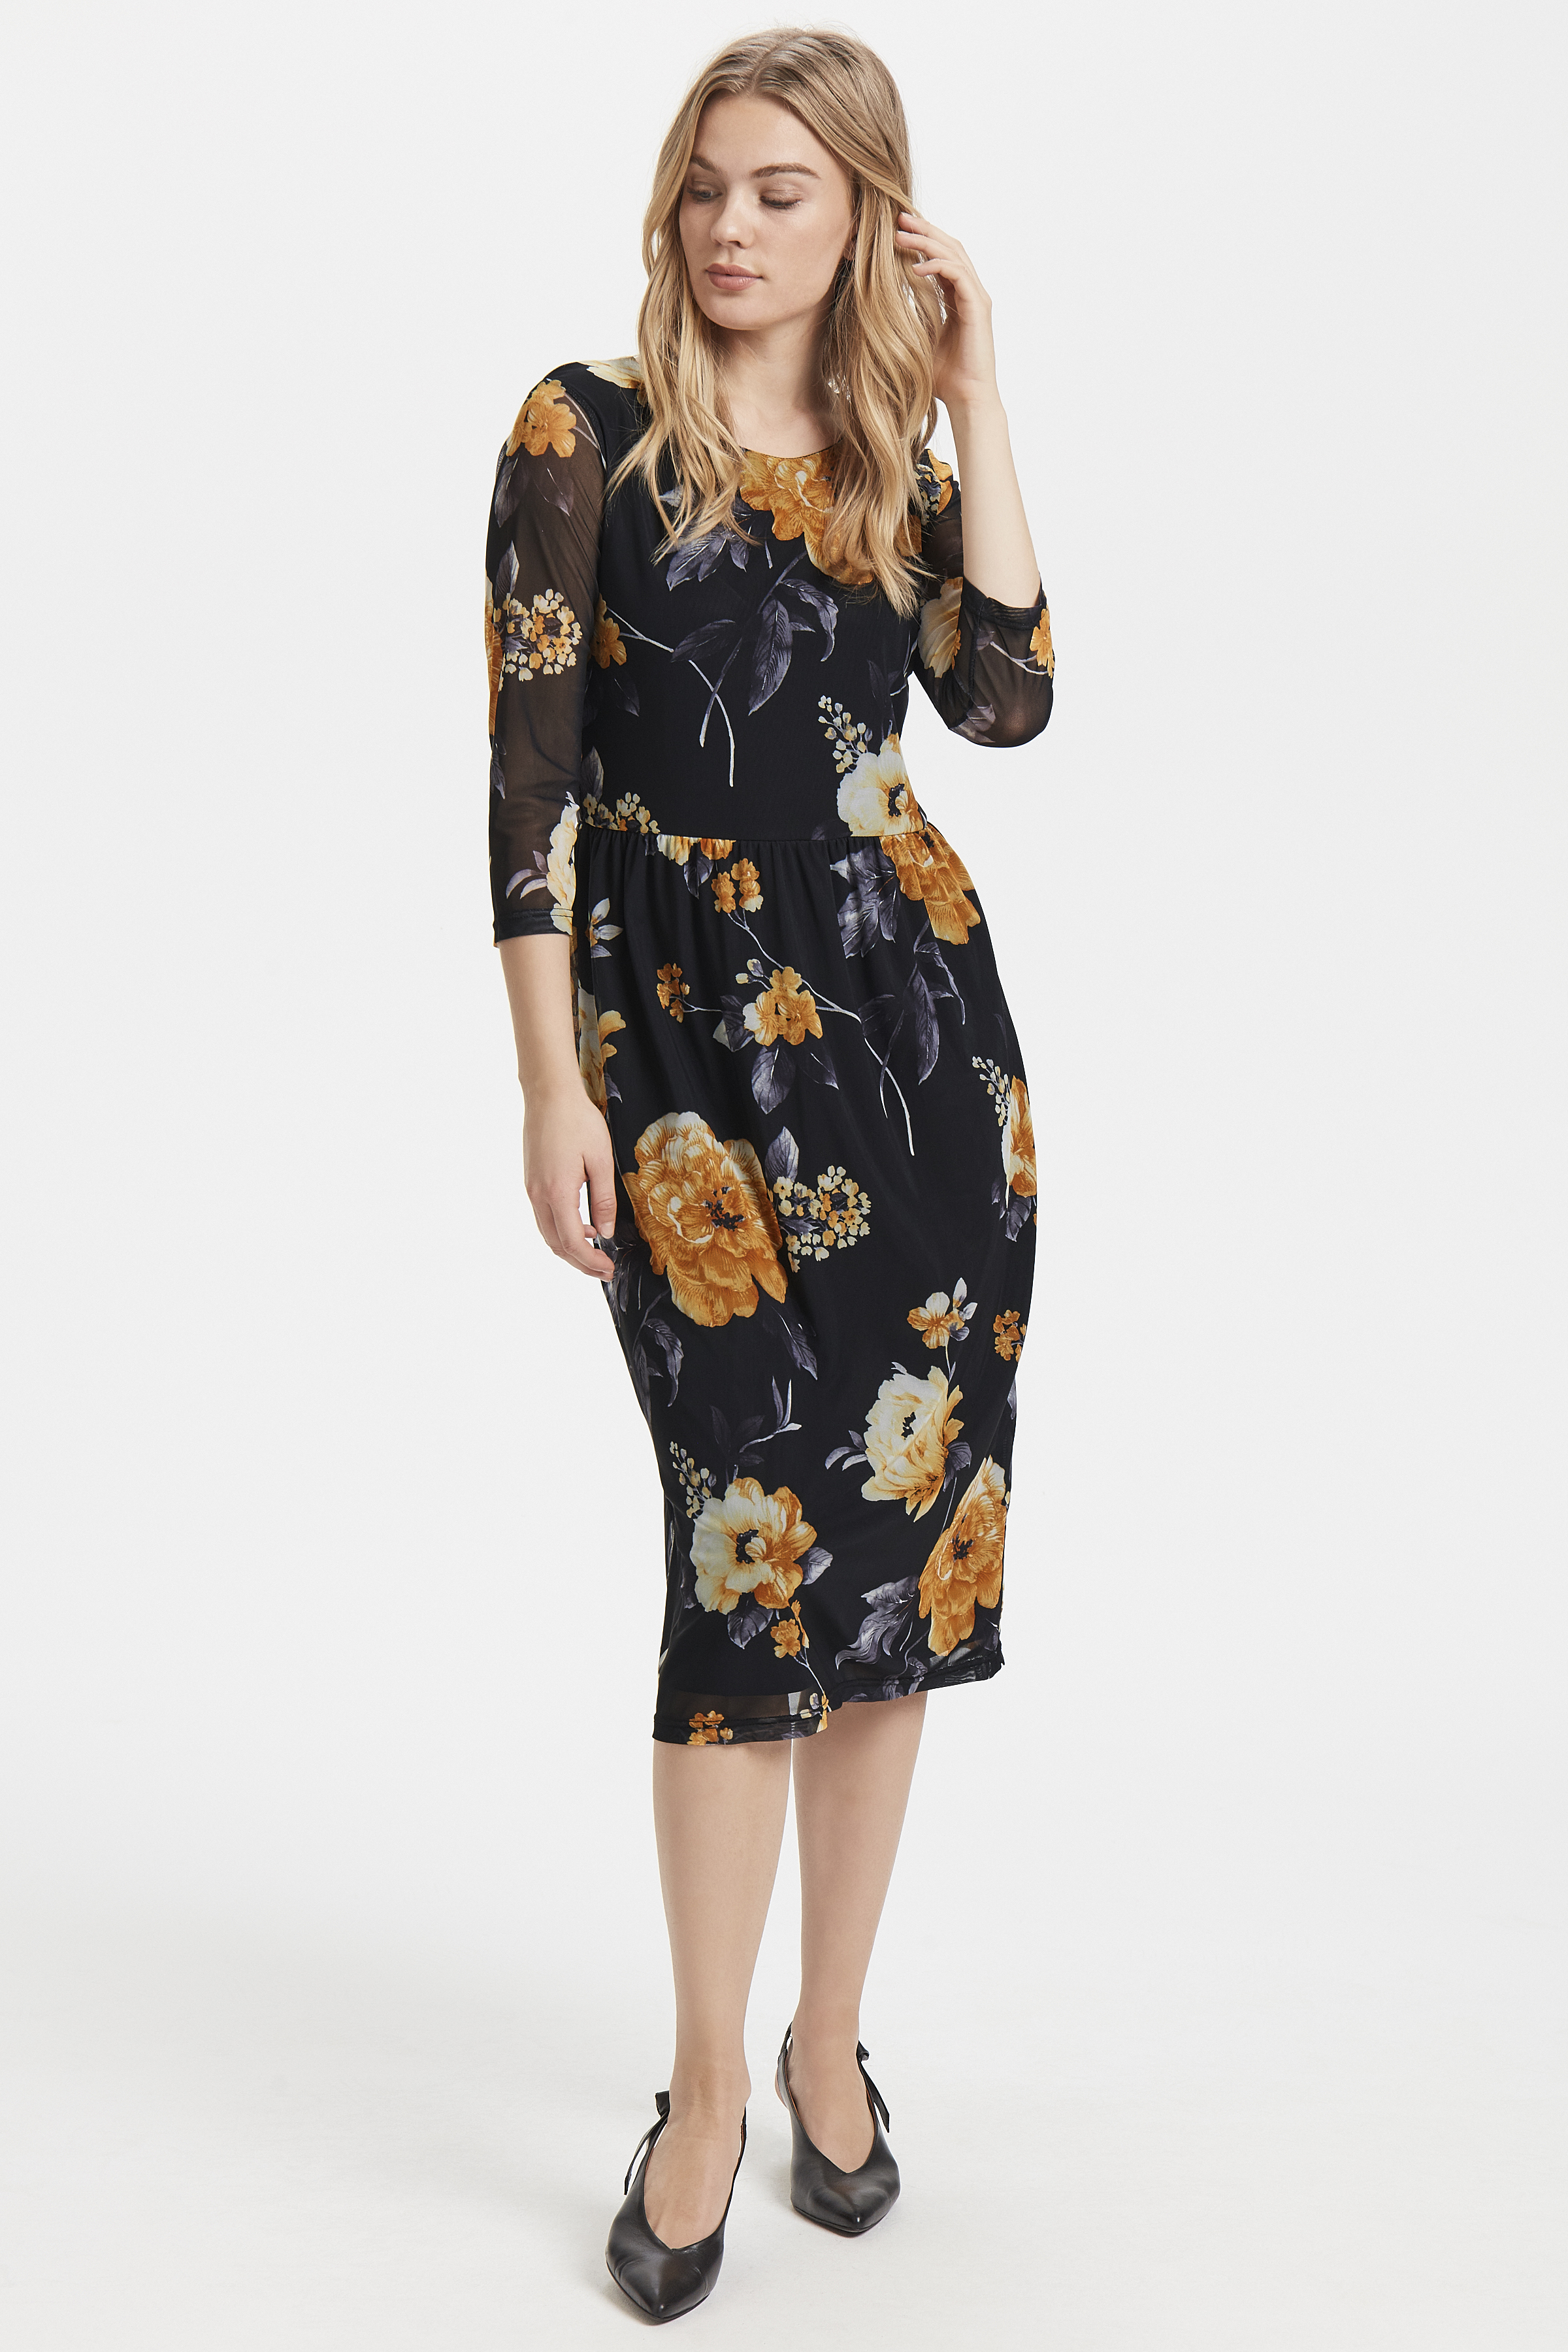 Black combi 1 Jersey dress from b.young – Buy Black combi 1 Jersey dress from size S-XXL here